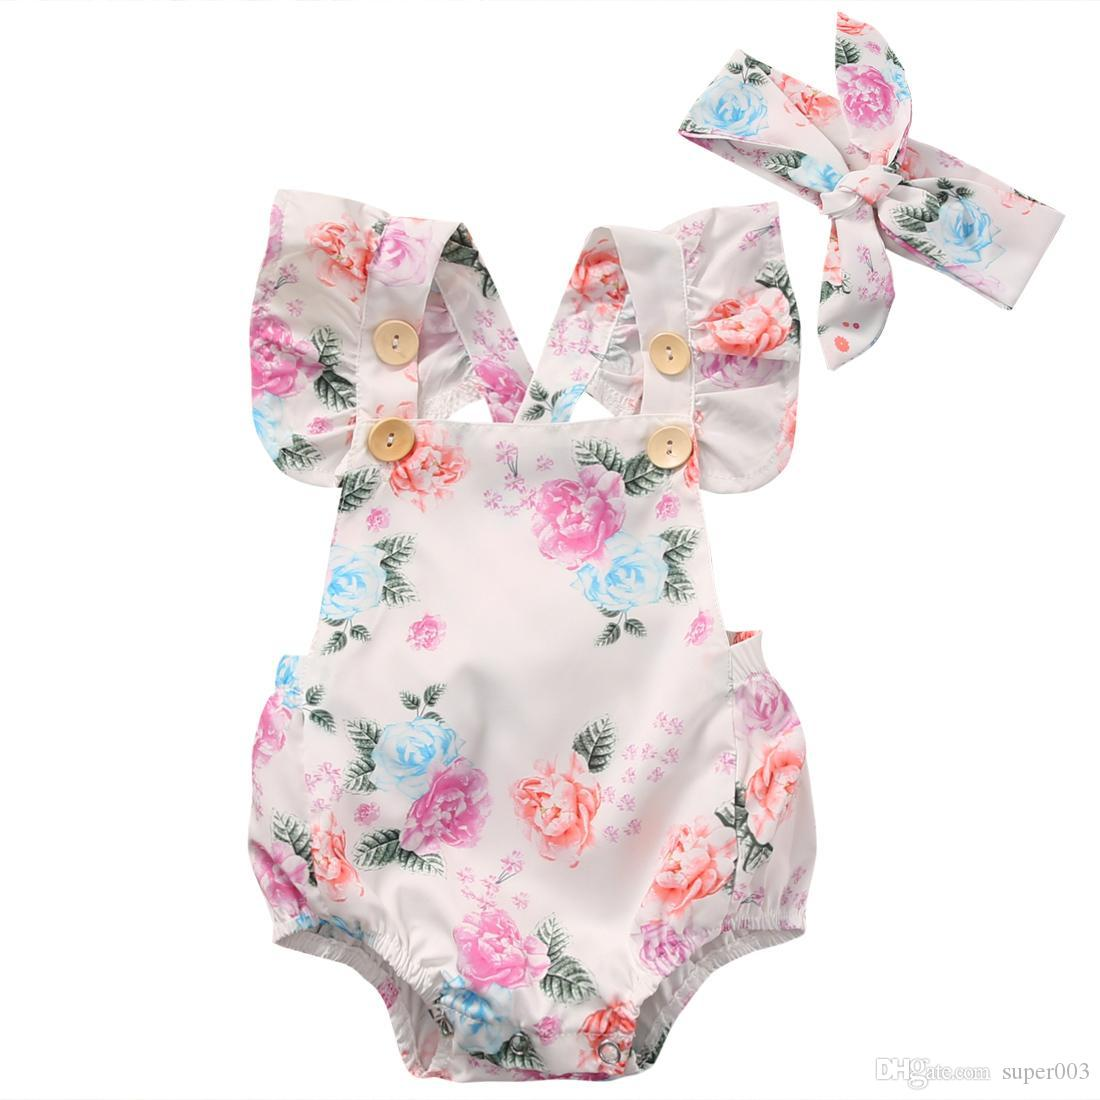 Infant Floral Bodysuit Turn-up Collar With Headband Playsuit Jumpsuit Outfit New